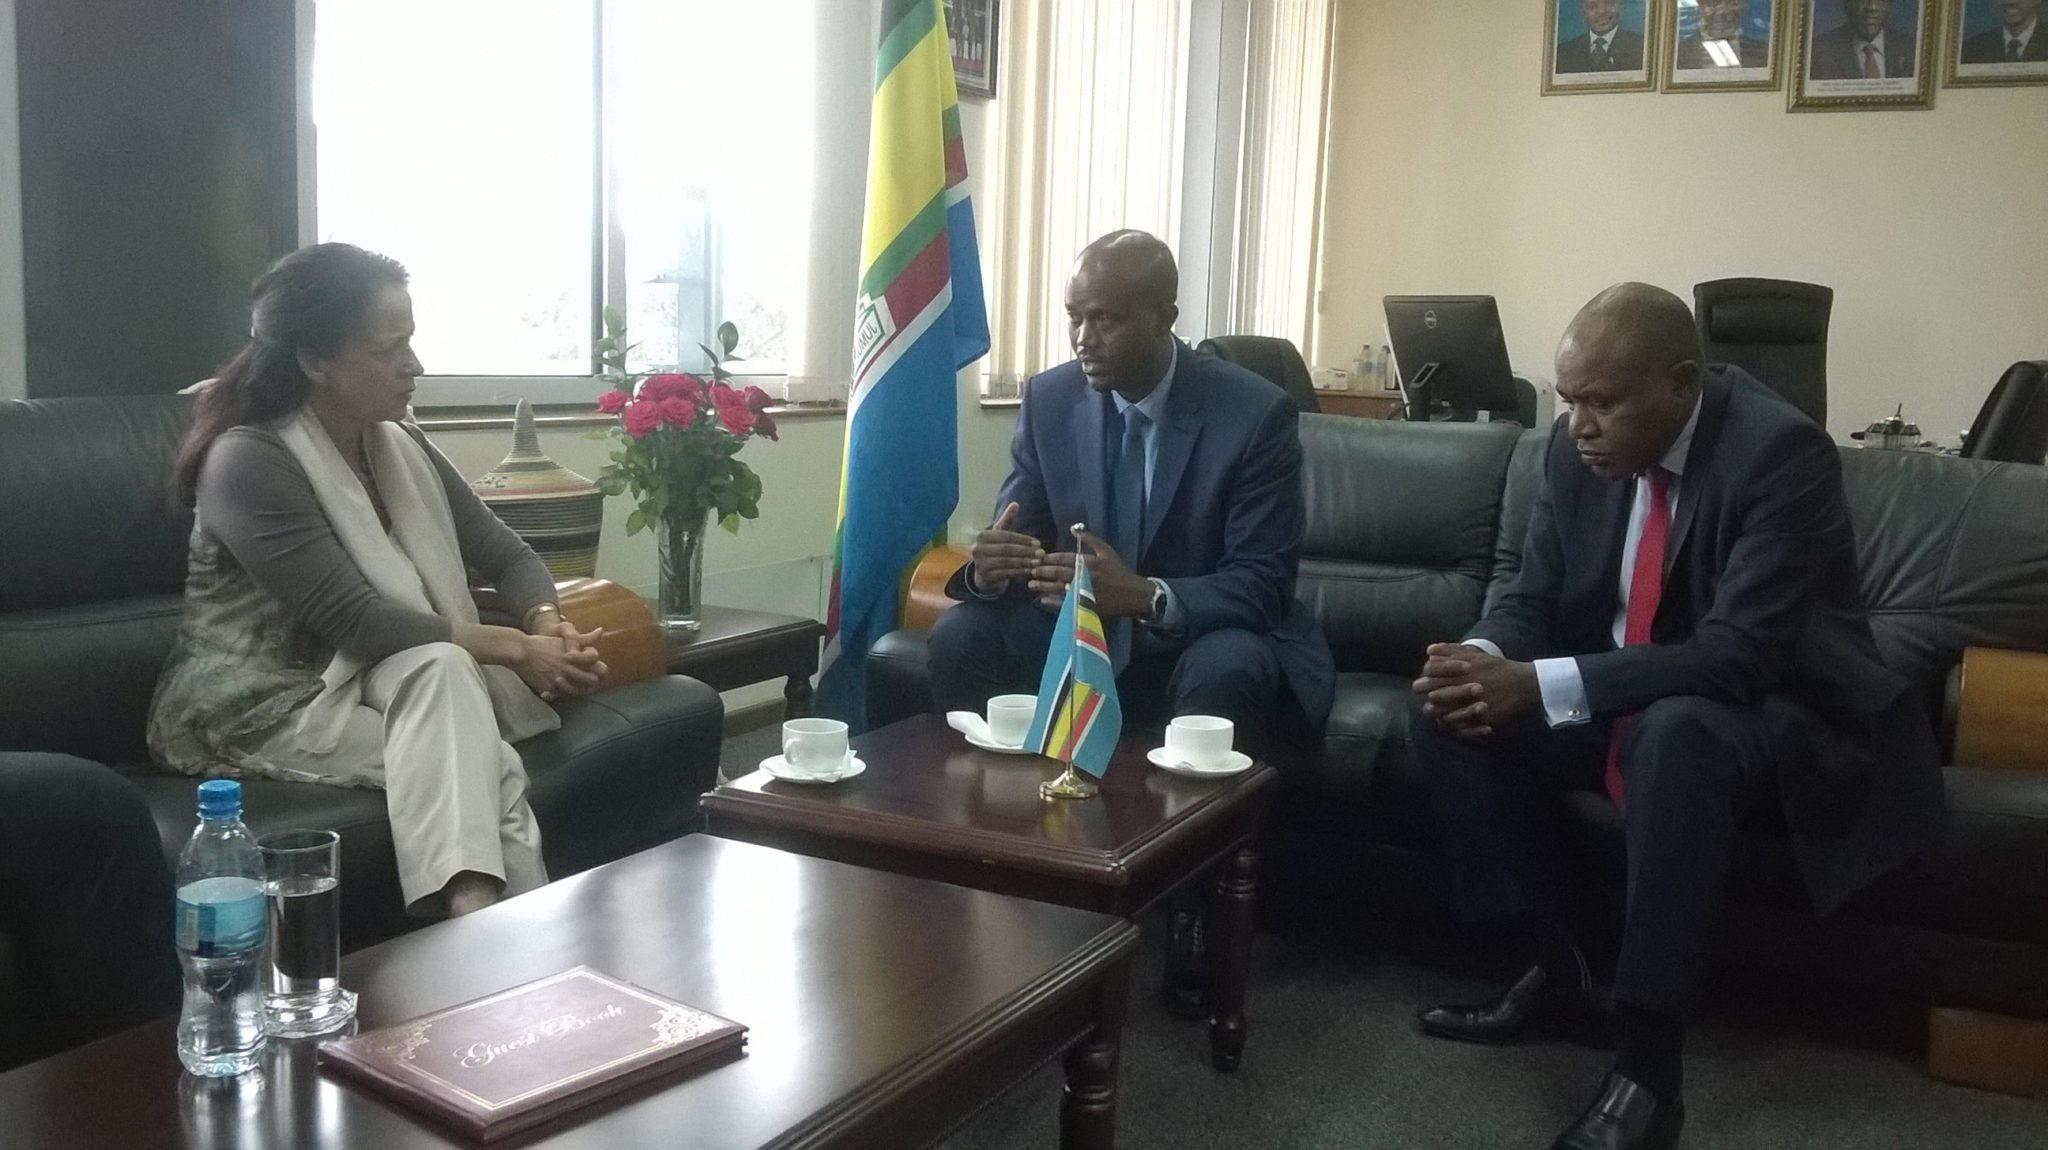 EAC Secretary General Amb. Liberat Mfumukeko (centre) confers with French Ambassador, Ms. Malika Berak, at the EAC Headquarters. On the right is EAC EAC Deputy Secretary General in charge of Political Federation, Mr. Charles Njoroge.